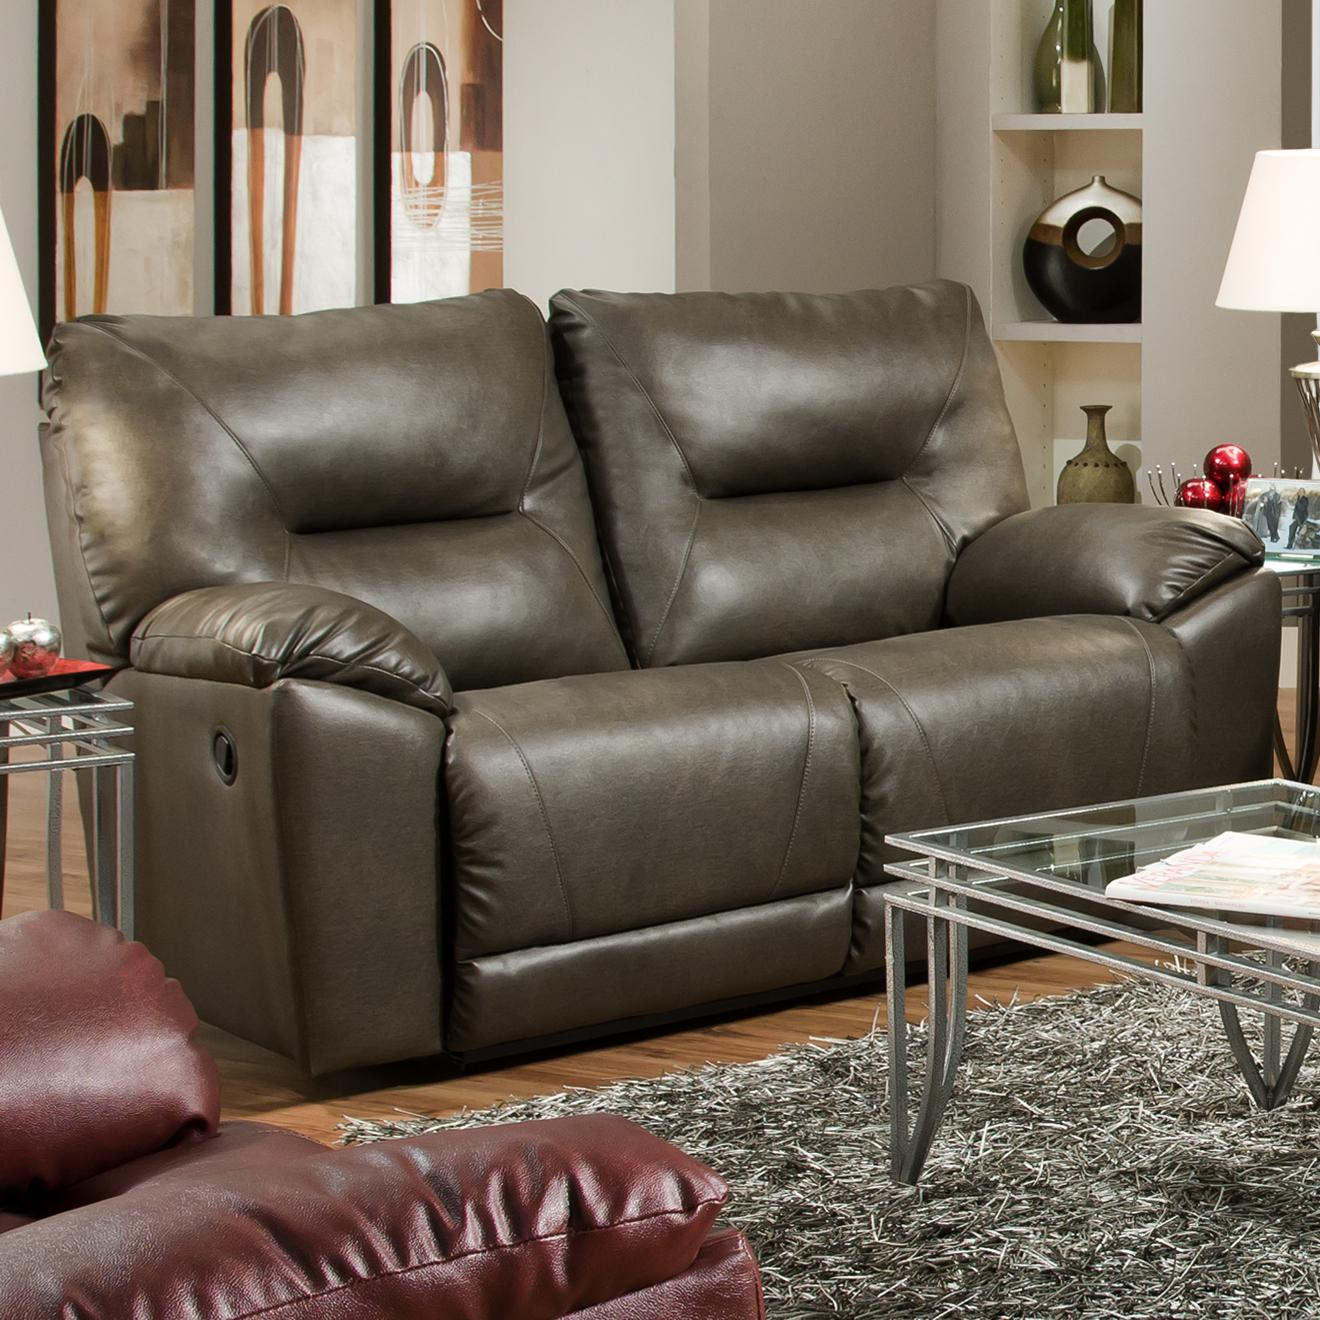 Southern Motion Dynamo Double Reclining Rocking Loveseat - Item Number: 590-41